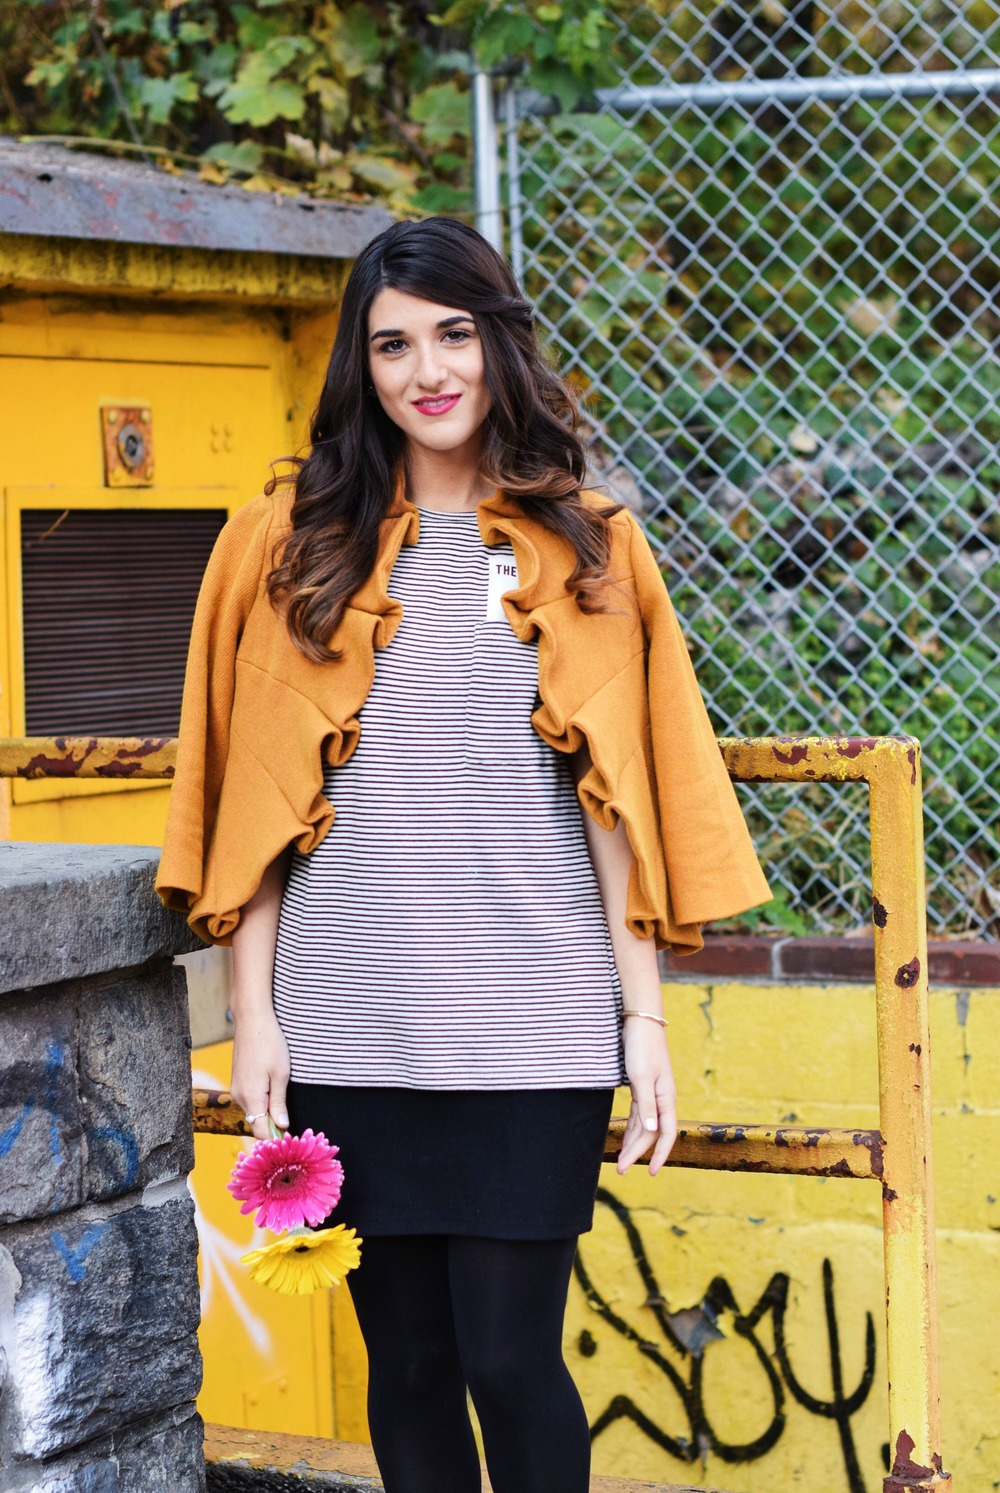 Yellow Ruffled Jacket Striped Tee Louboutins & Love Fashion Blog Esther Santer NYC Street Style Blogger Zara Pocket Tshirt Outfit OOTD Inspo Inspiration Photoshoot New York City Black Booties Louise et Cie Nordstrom Hair Brunette Girl Women Shopping.jpg